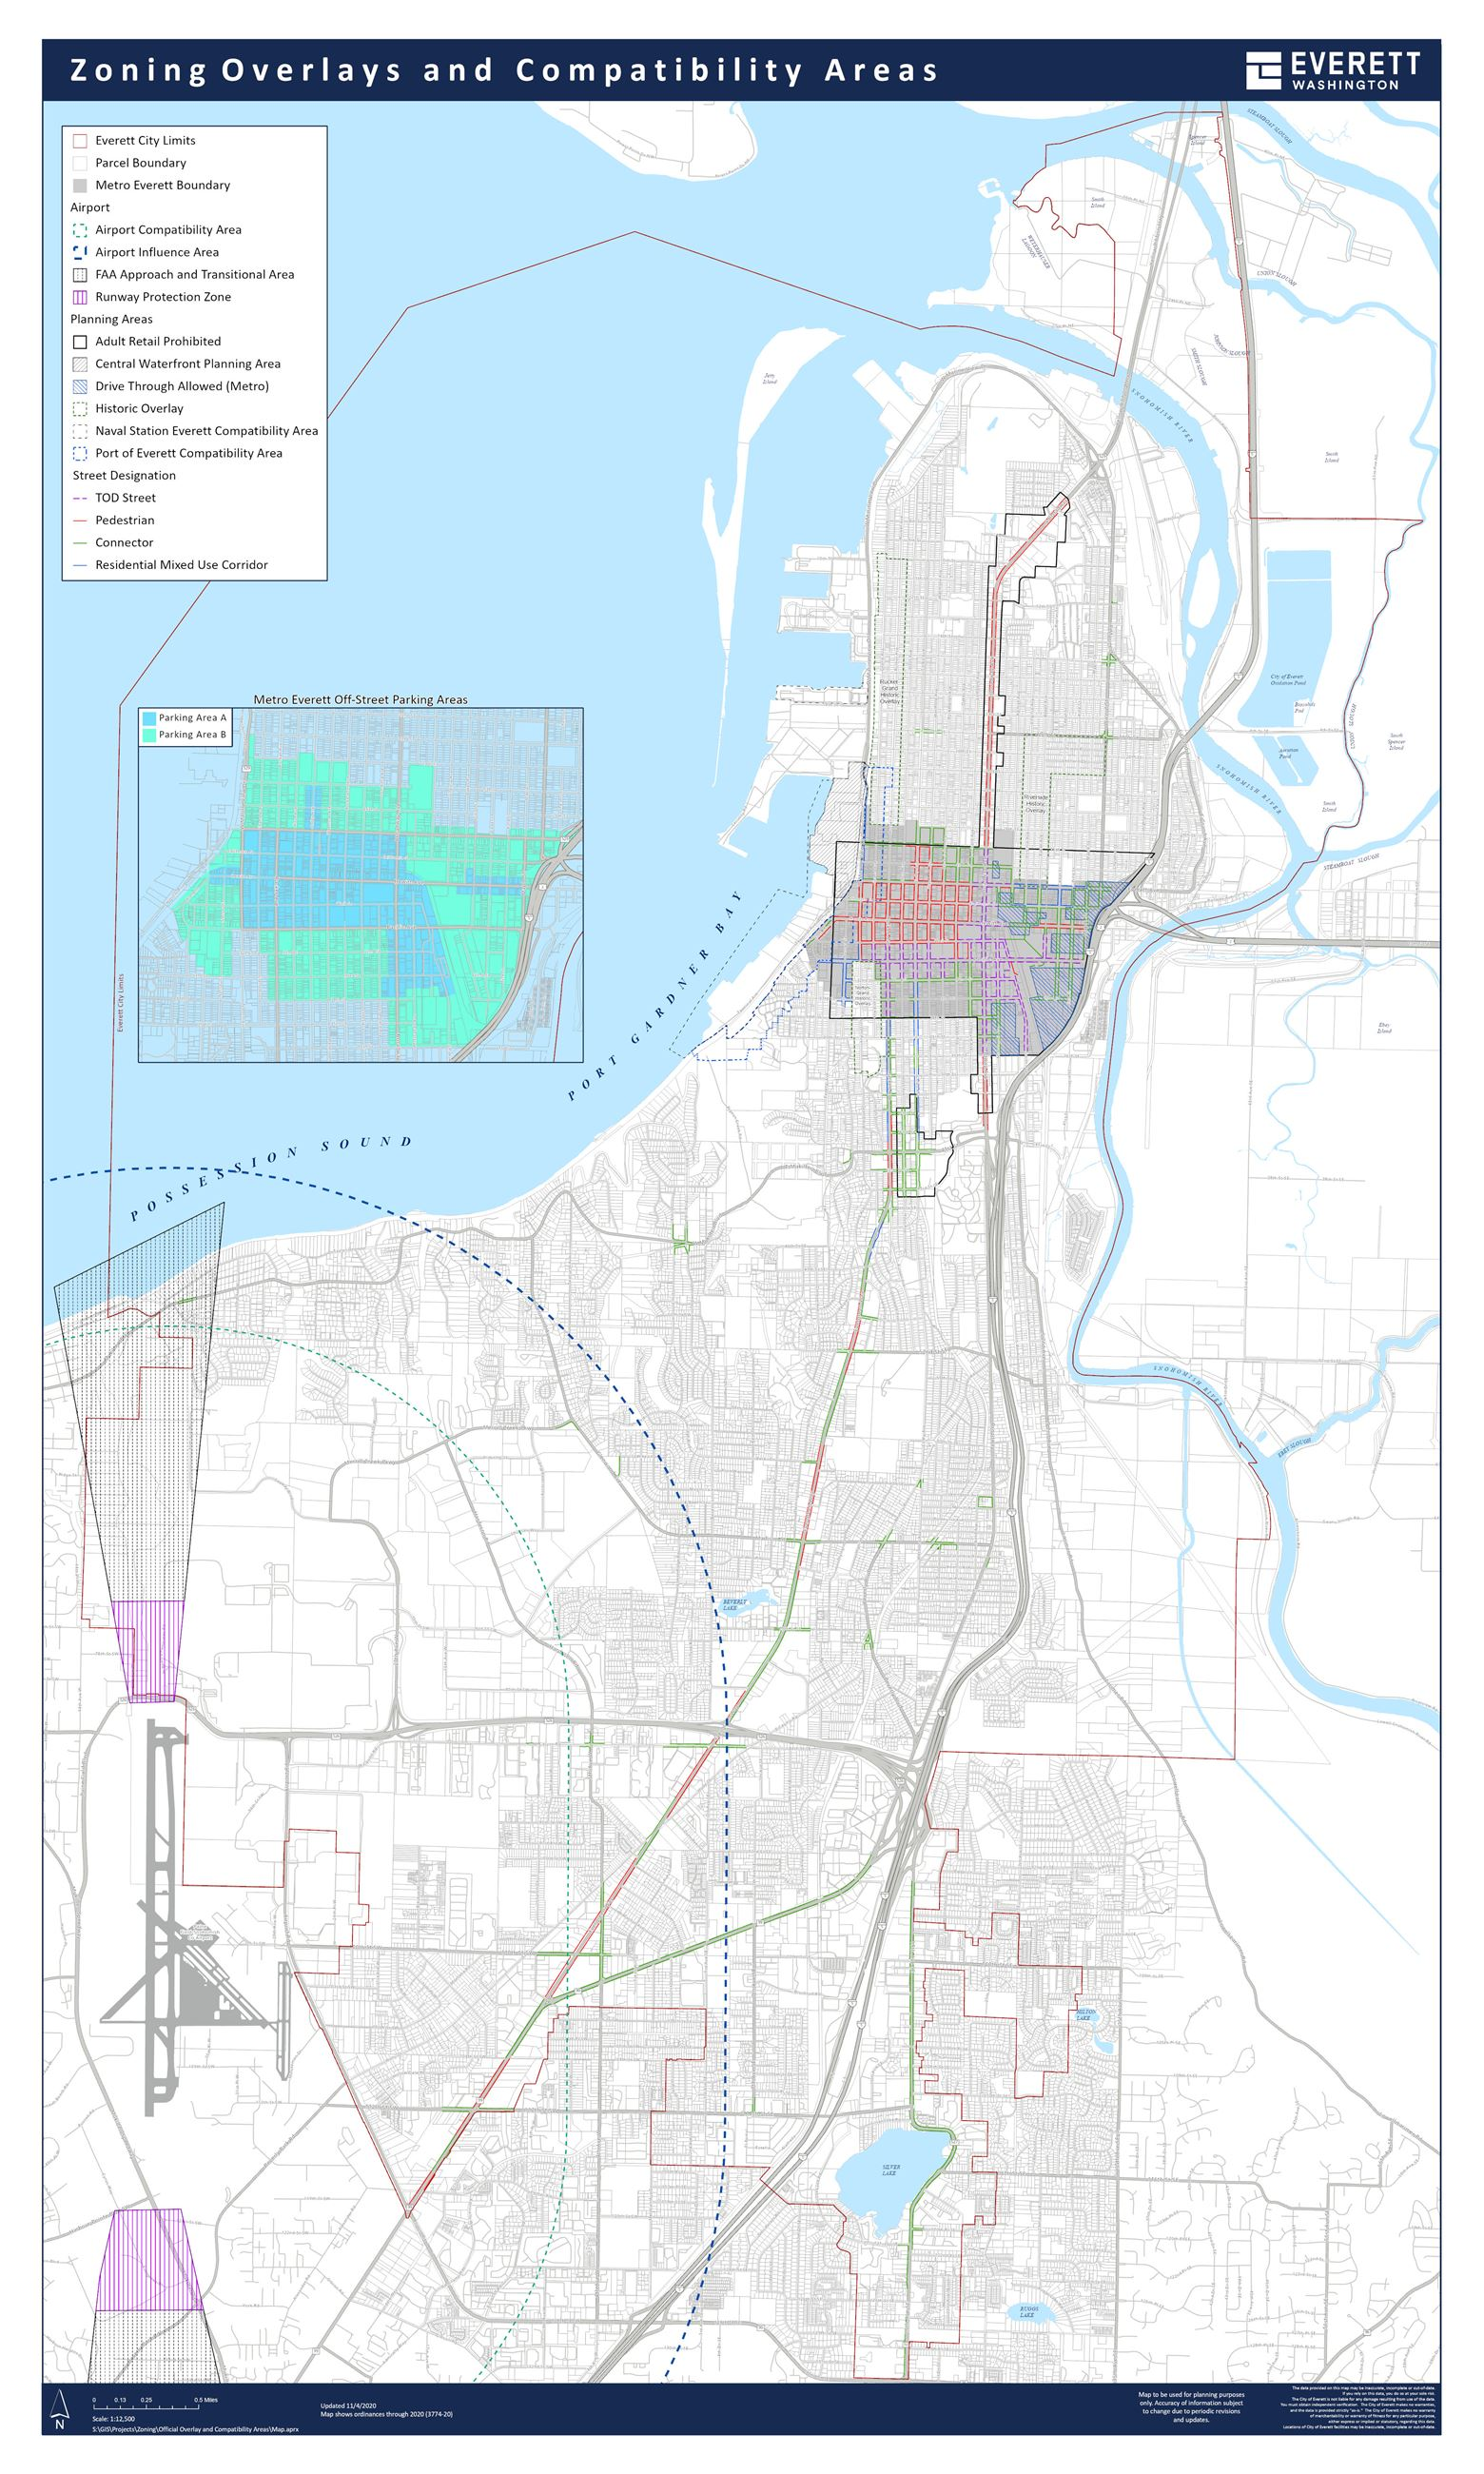 Zoning Overlay and Compatibiliy Areas